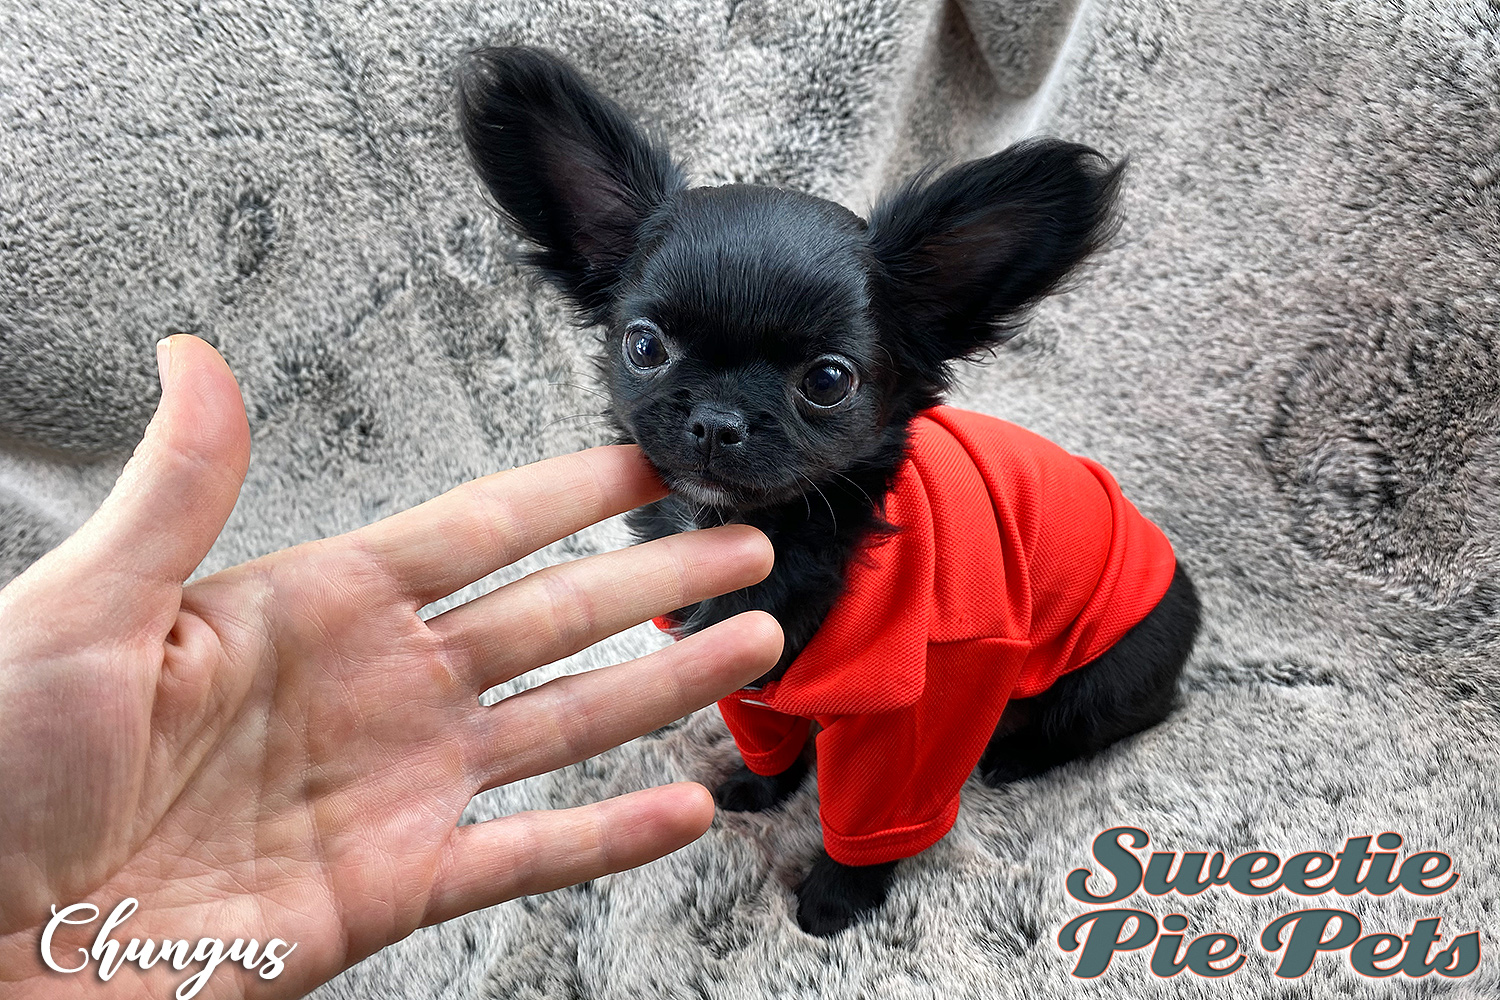 extreme apple head Chihuahua puppy for adoption California